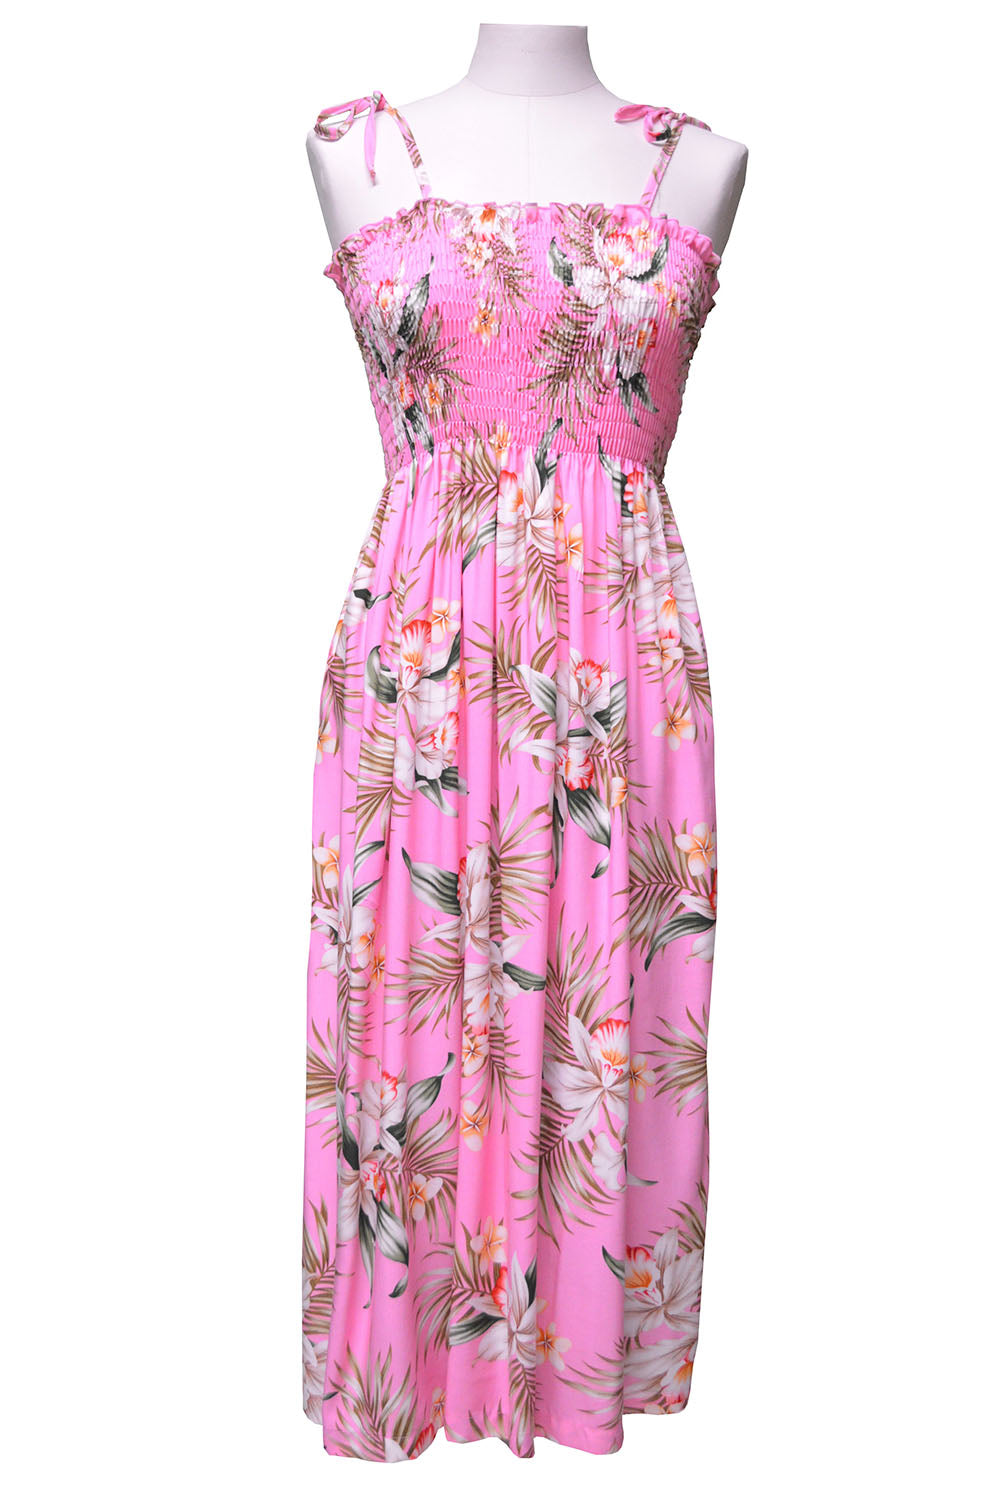 Pacific Orchid Pink Mid-Length Tube Dress